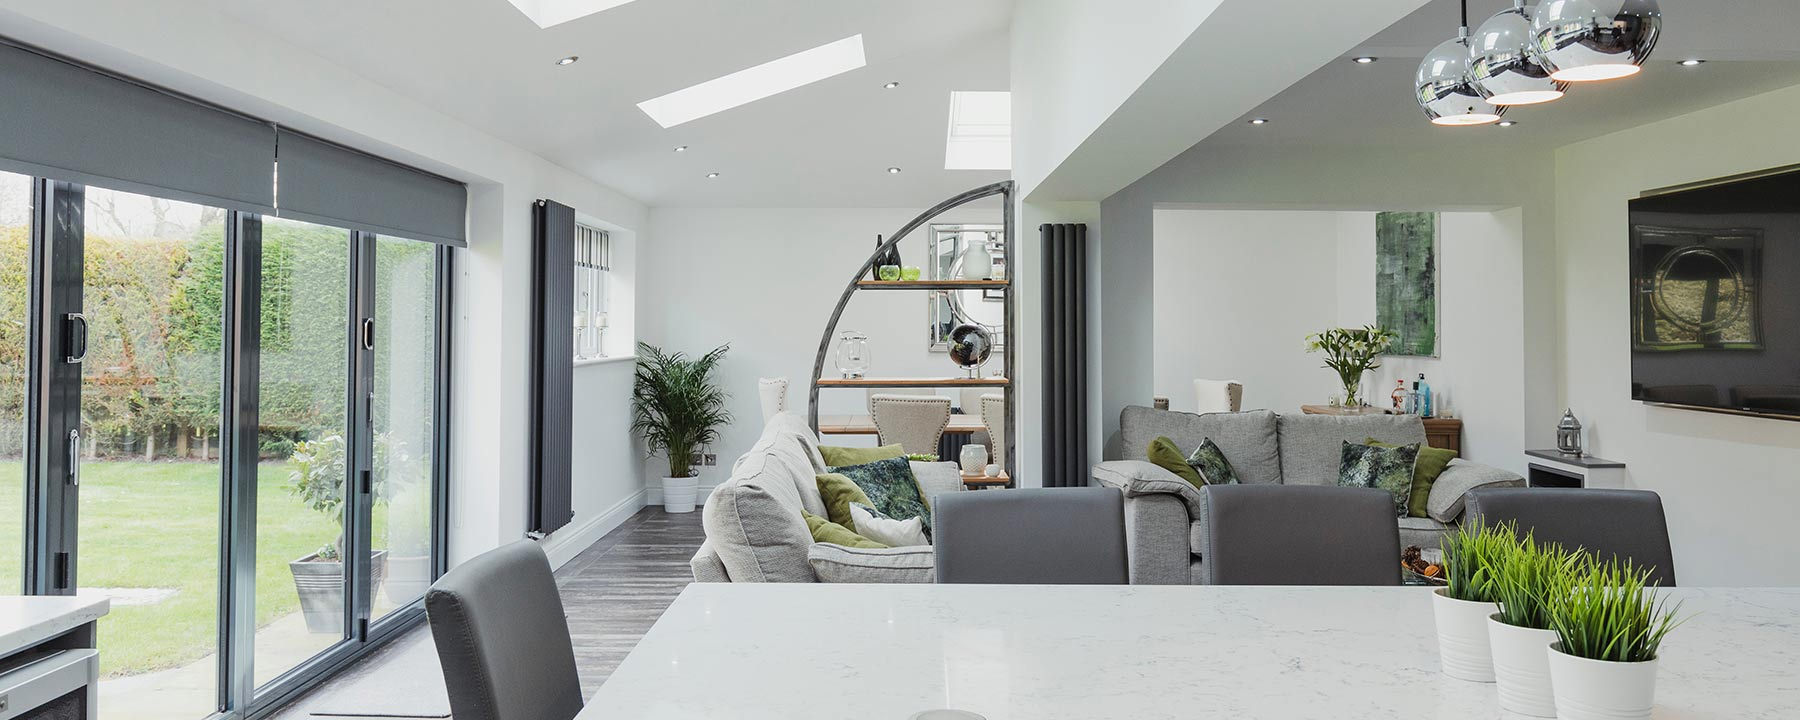 open plan living home extension in London